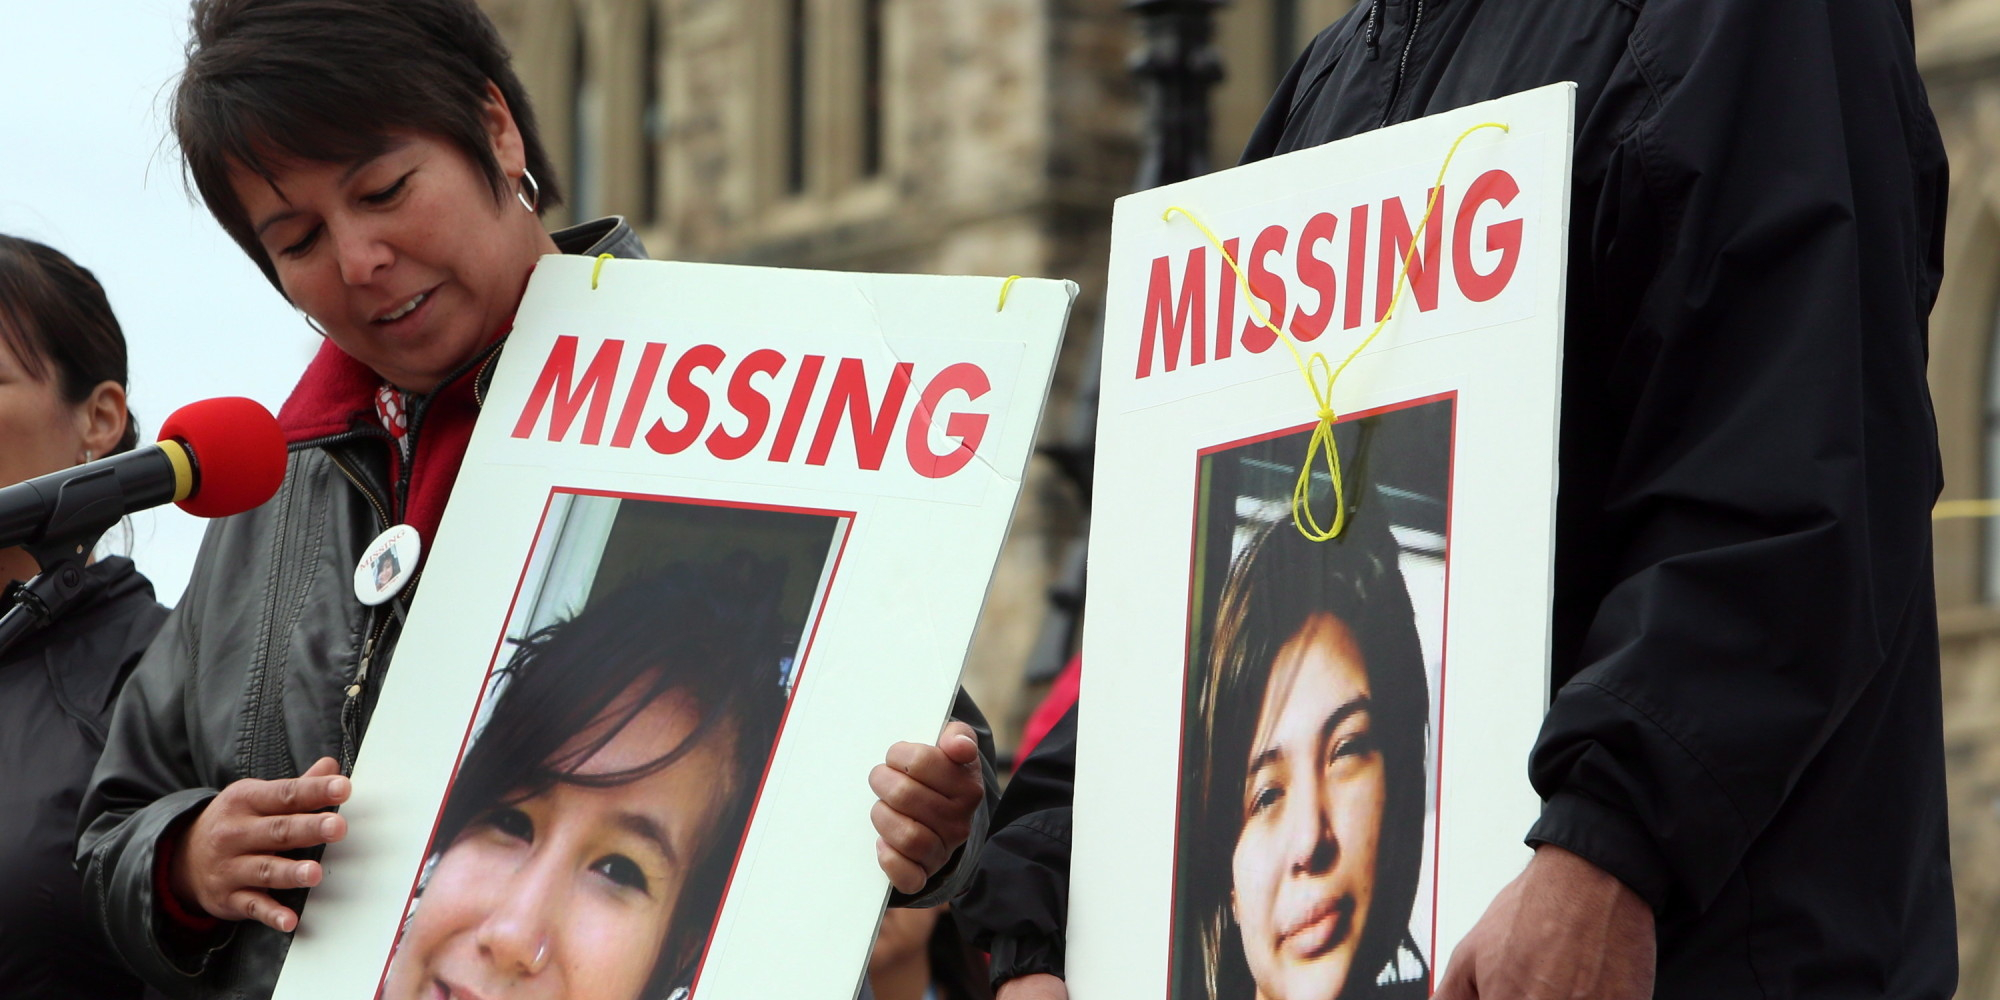 aboriginal women in canada Domestic sex trafficking of aboriginal girls in canada:  view the fact that aboriginal women are being  domestic sex trafficking of aboriginal girls in.